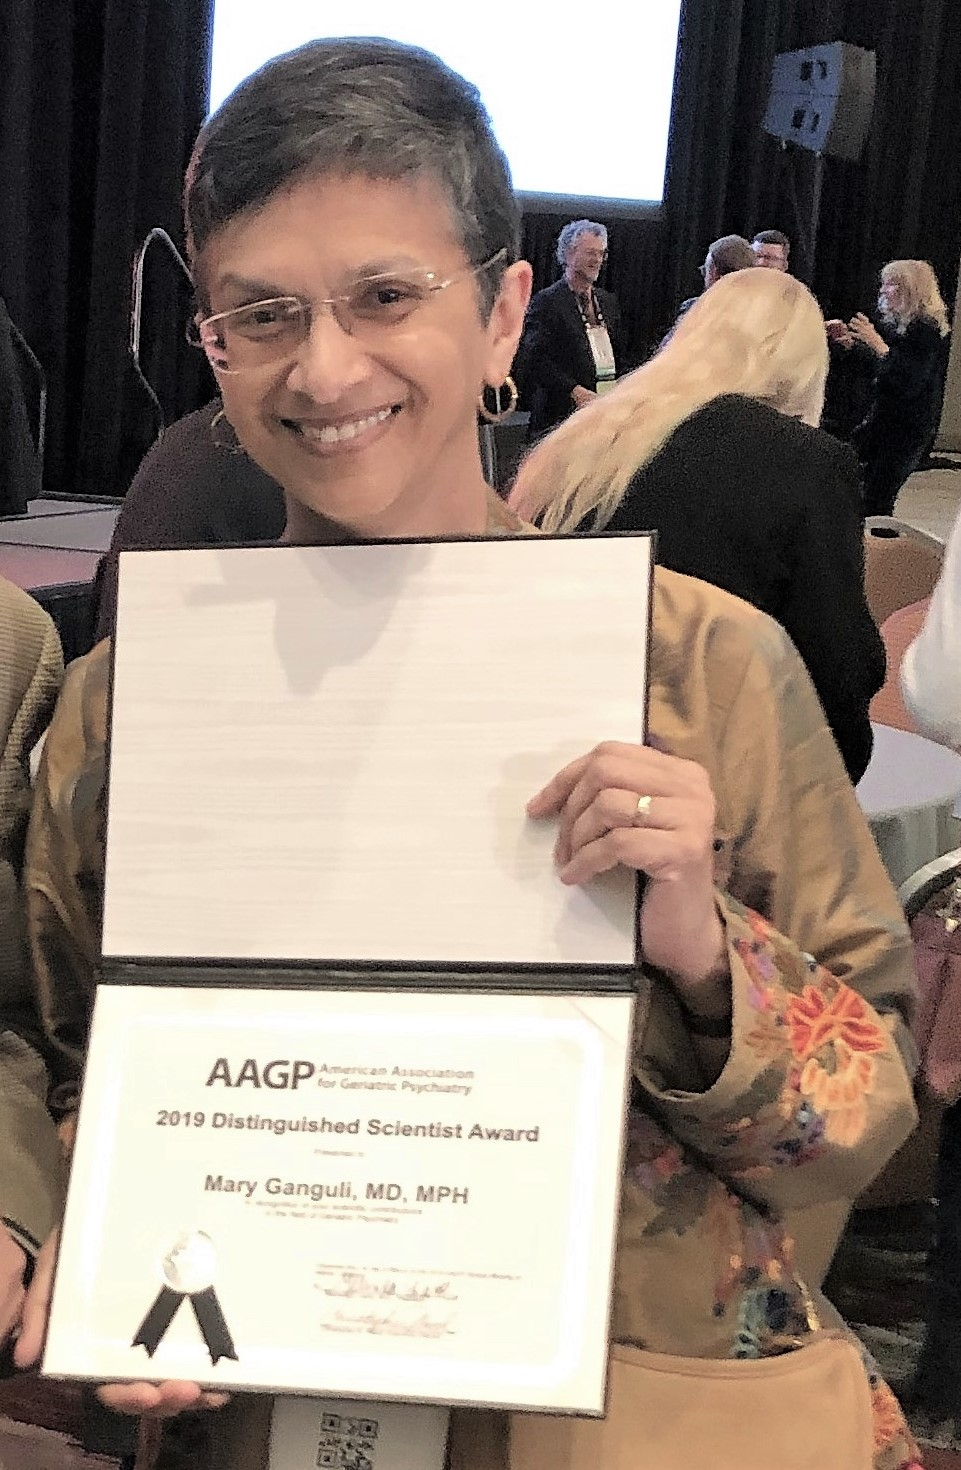 Dr. Mary Ganguli was presented with the 2019 AAGP Distinguished Scientist Award